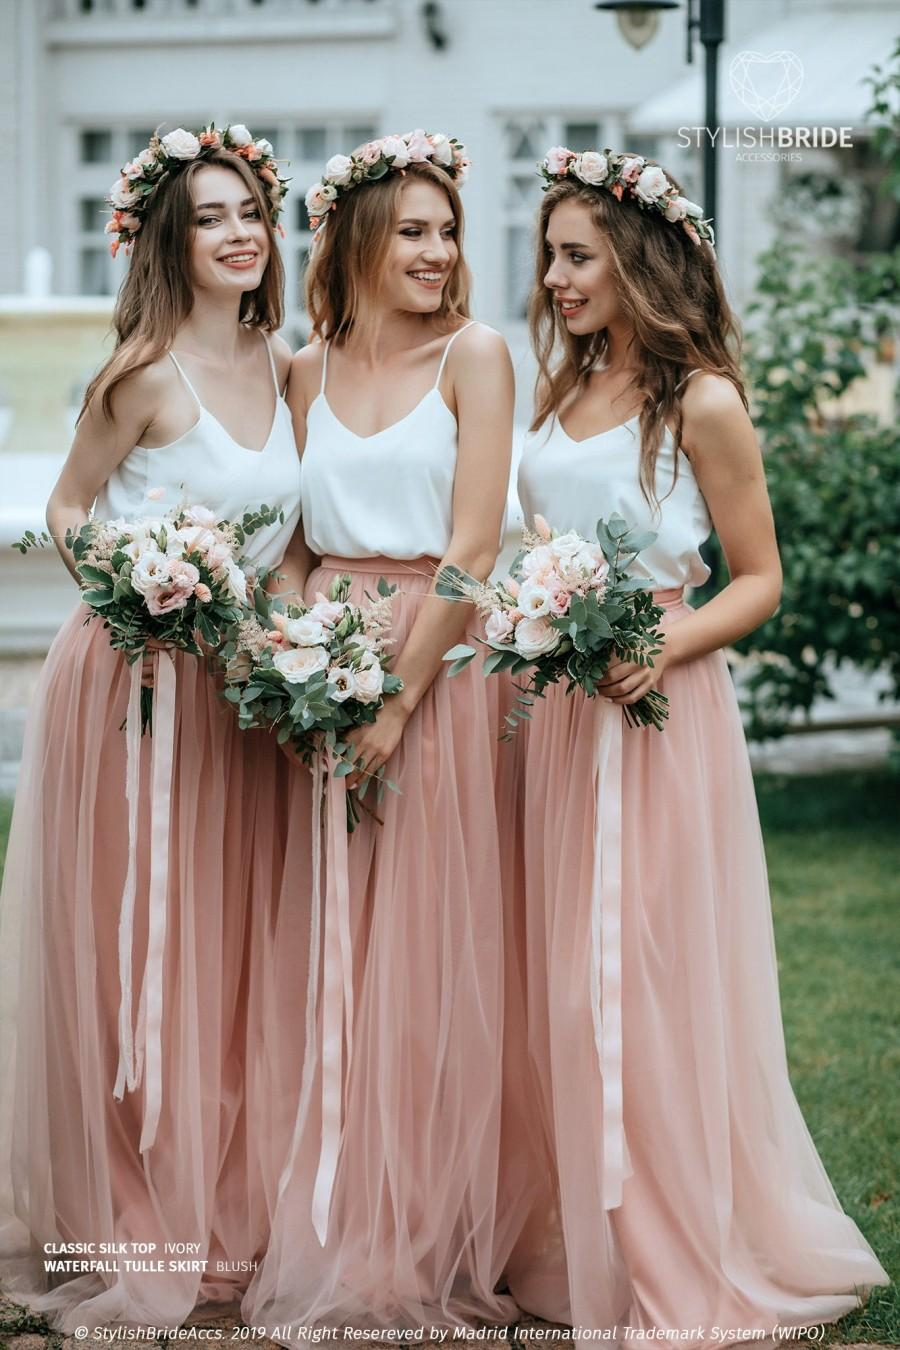 Wedding - Simple Bridesmaids Separates: Silk Classic Cami Top and Waterfall Floor Length Tulle Skirt, available in Plus Size